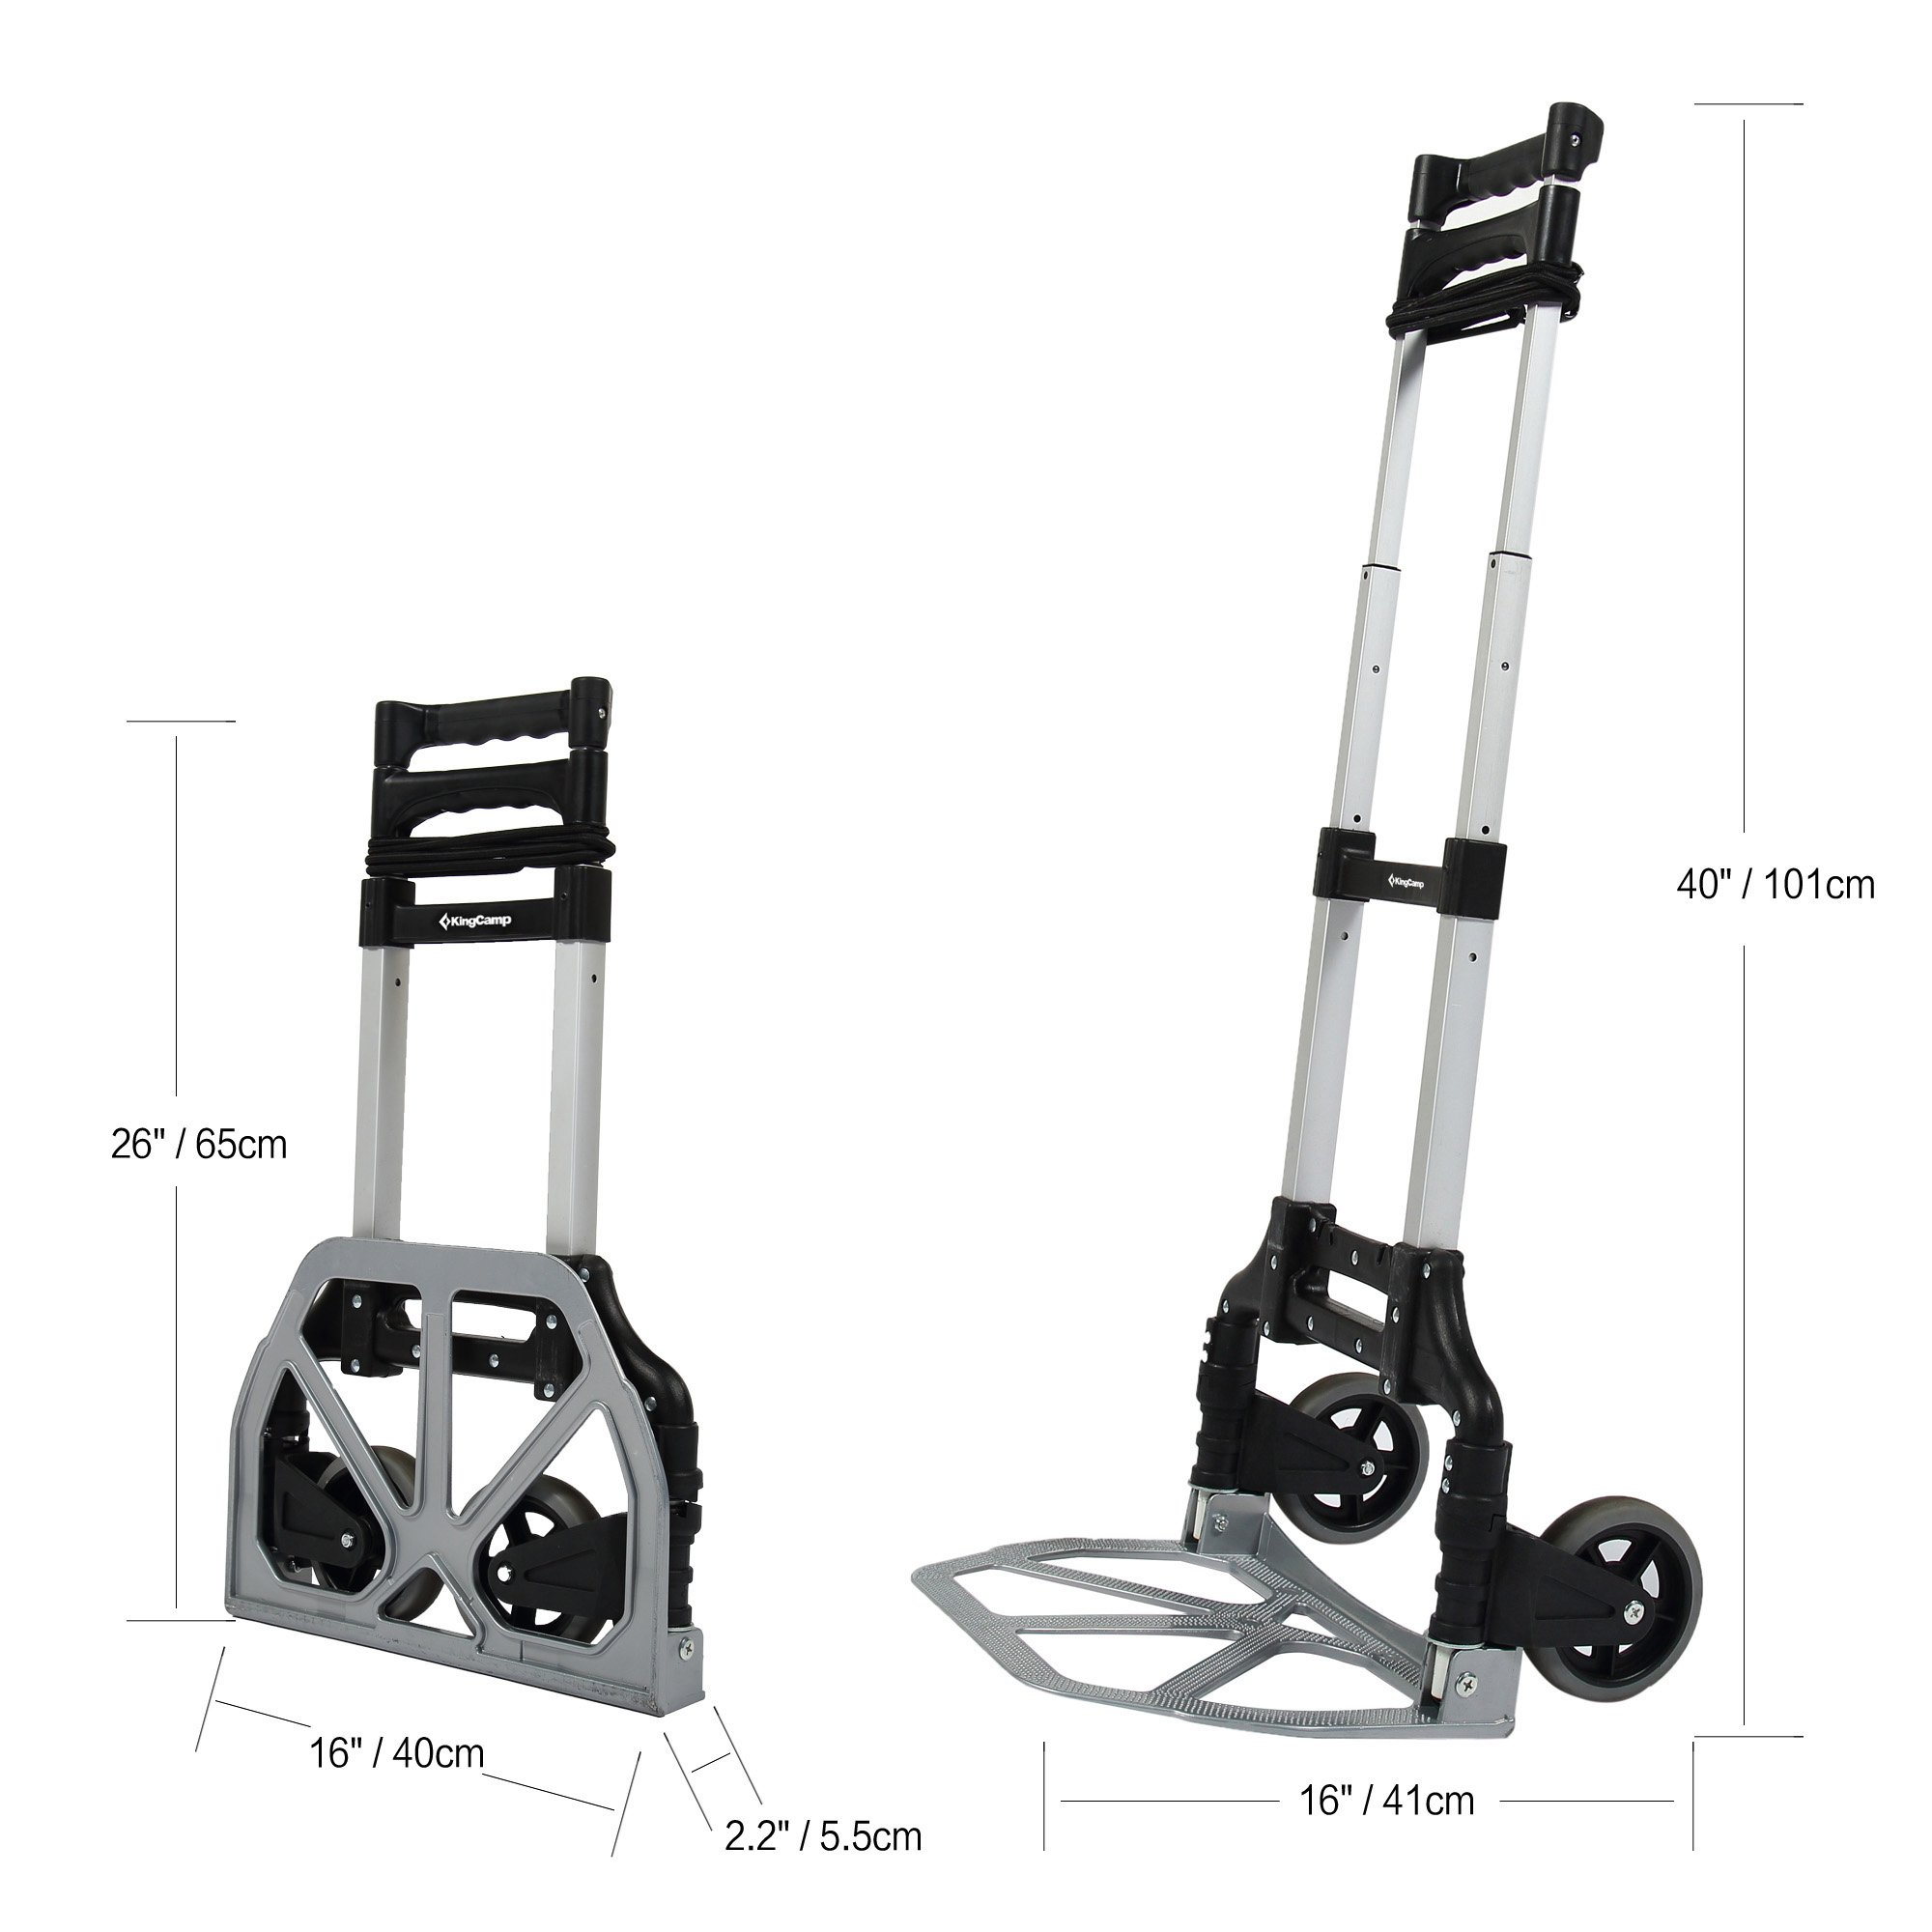 KingCamp Folding Cart 150 lbs Capacity Hand Truck with Bungee Cord by KingCamp (Image #2)